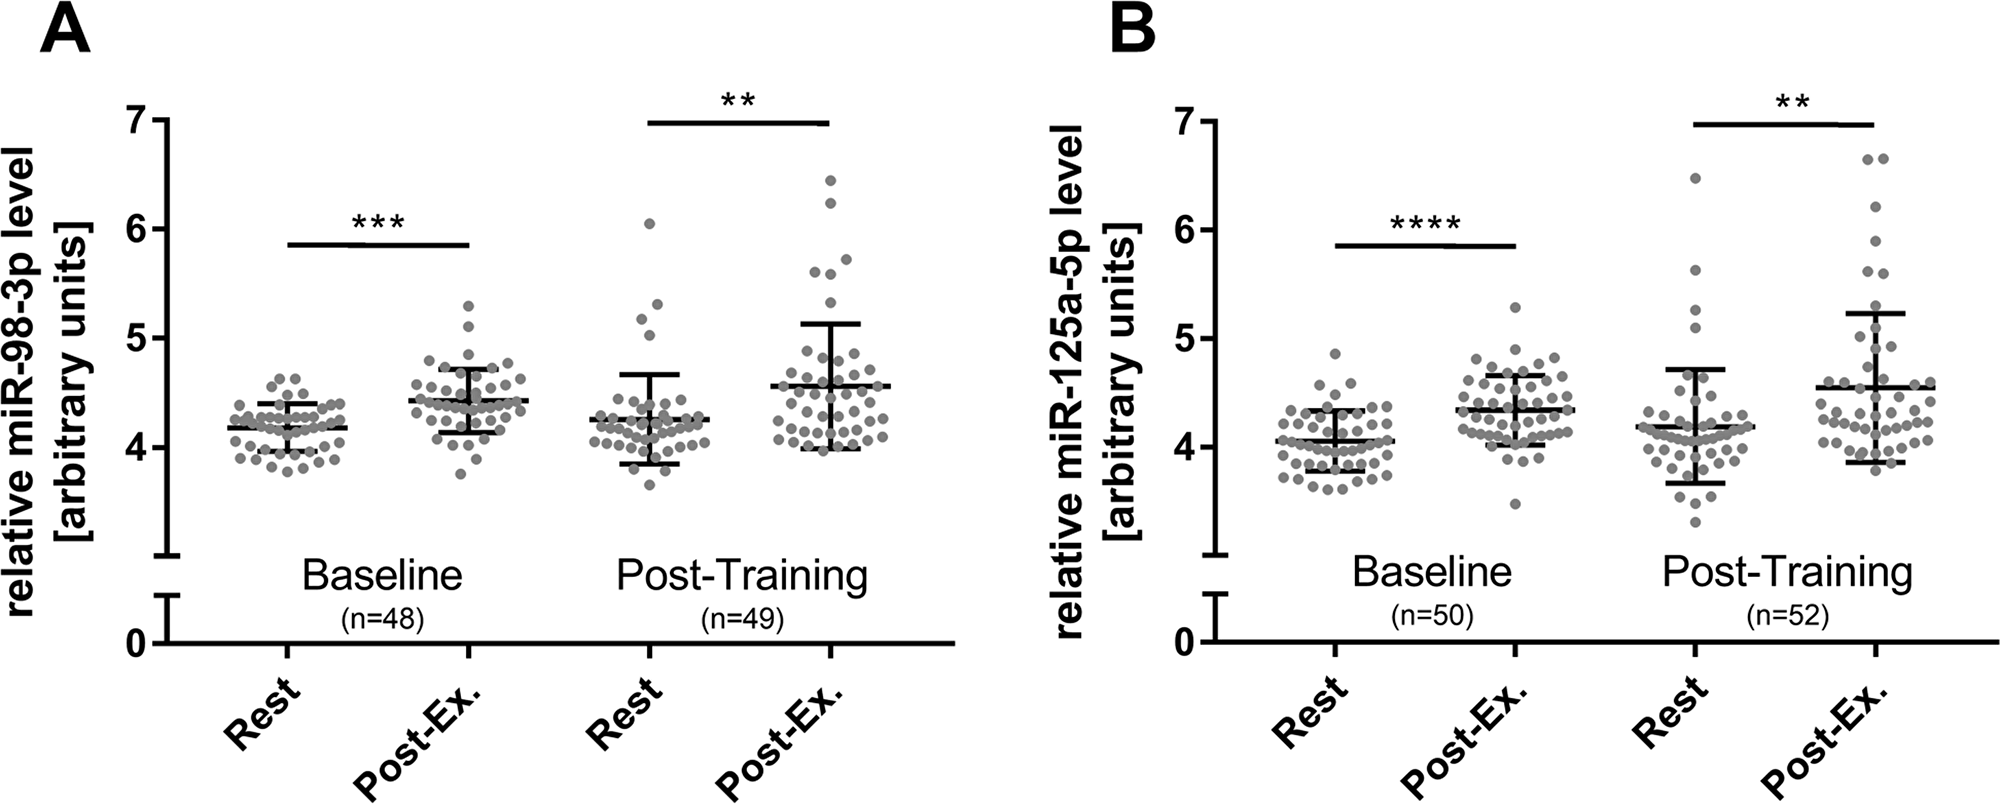 Overall HIIT effects on miR-98-3p and miR-125a-5p levels.